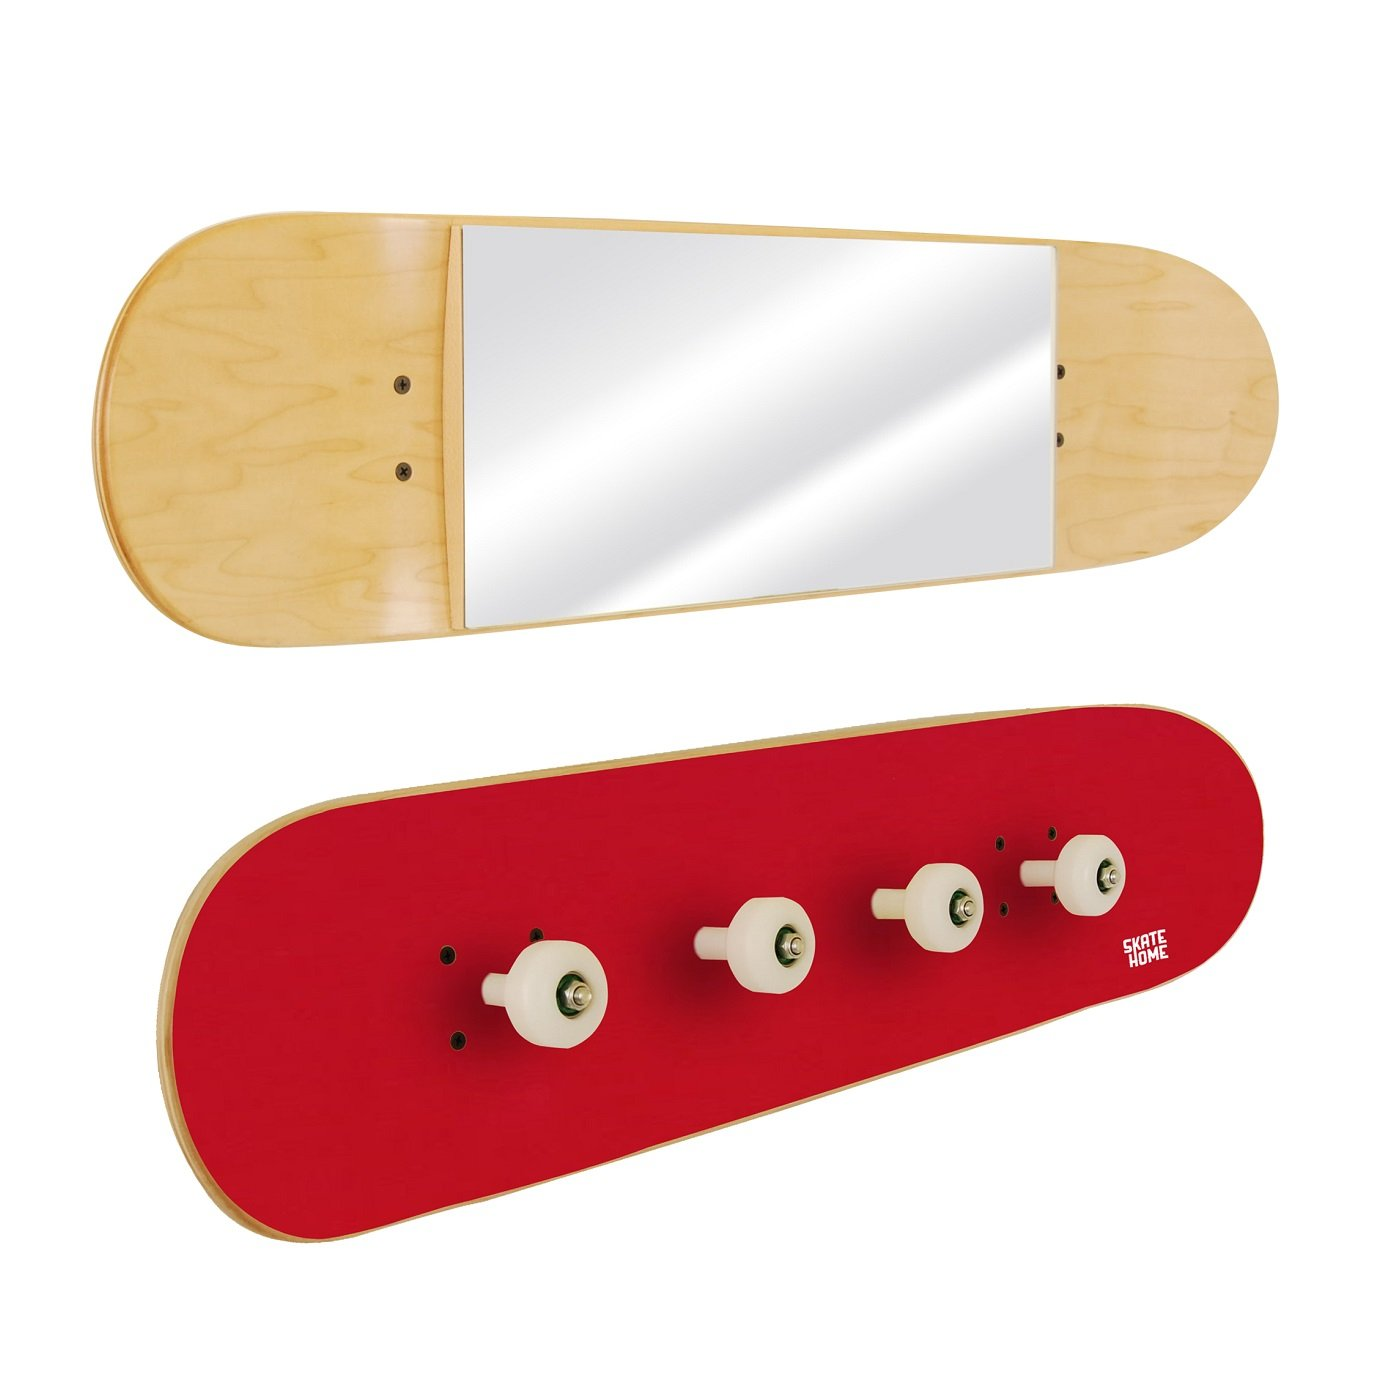 Set kids furniture with skateboard decks: Mirror and Coat Rack - Special gift for skateboarders - Red